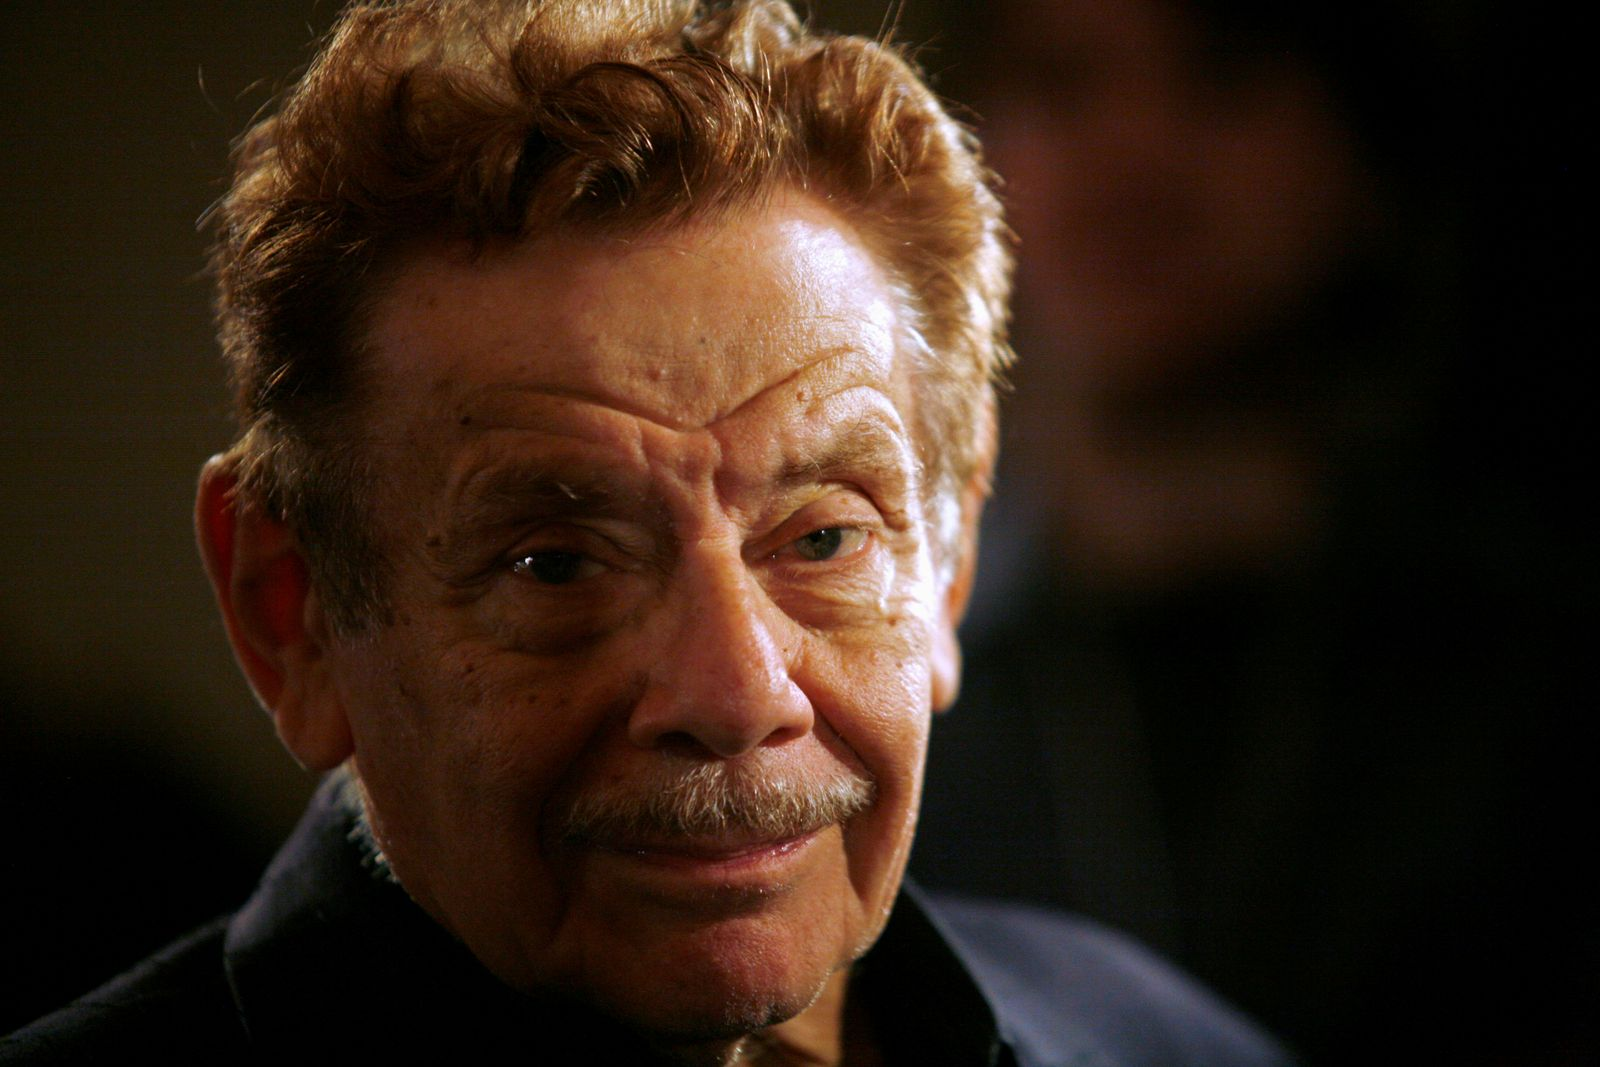 FILE PHOTO: Actor Jerry Stiller arrives at the American Museum of Natural History for the premiere of the movie Night at the Museum in New York